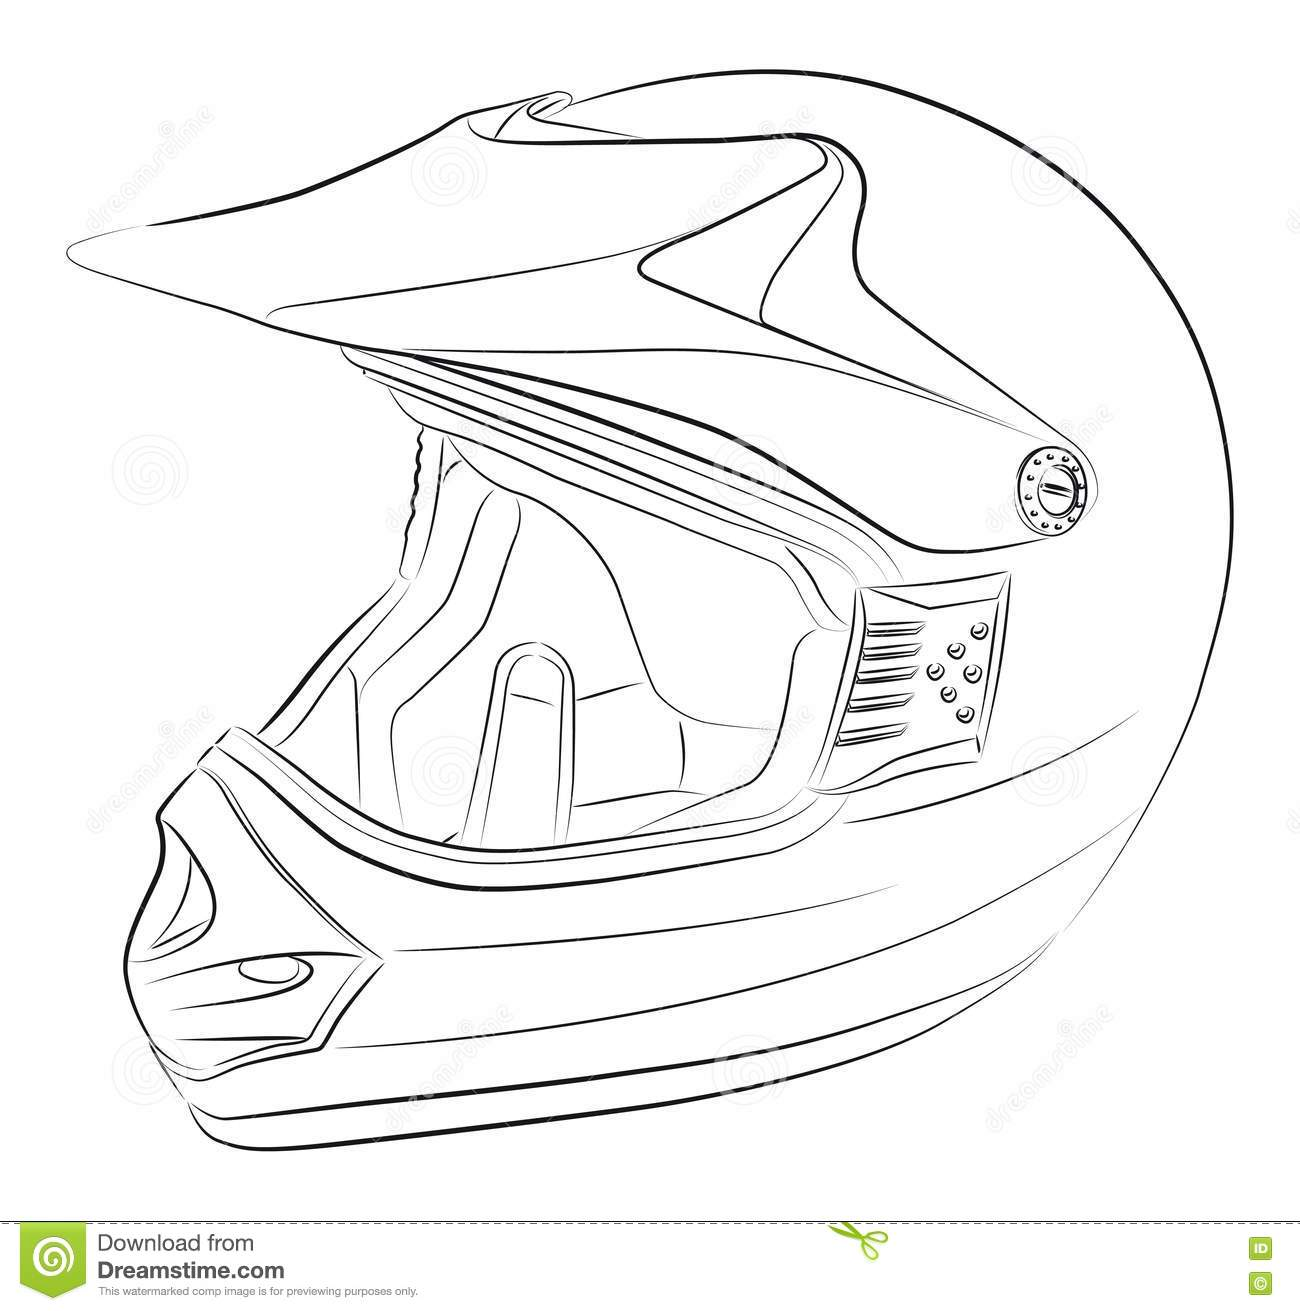 how to draw on motorcycle helmet